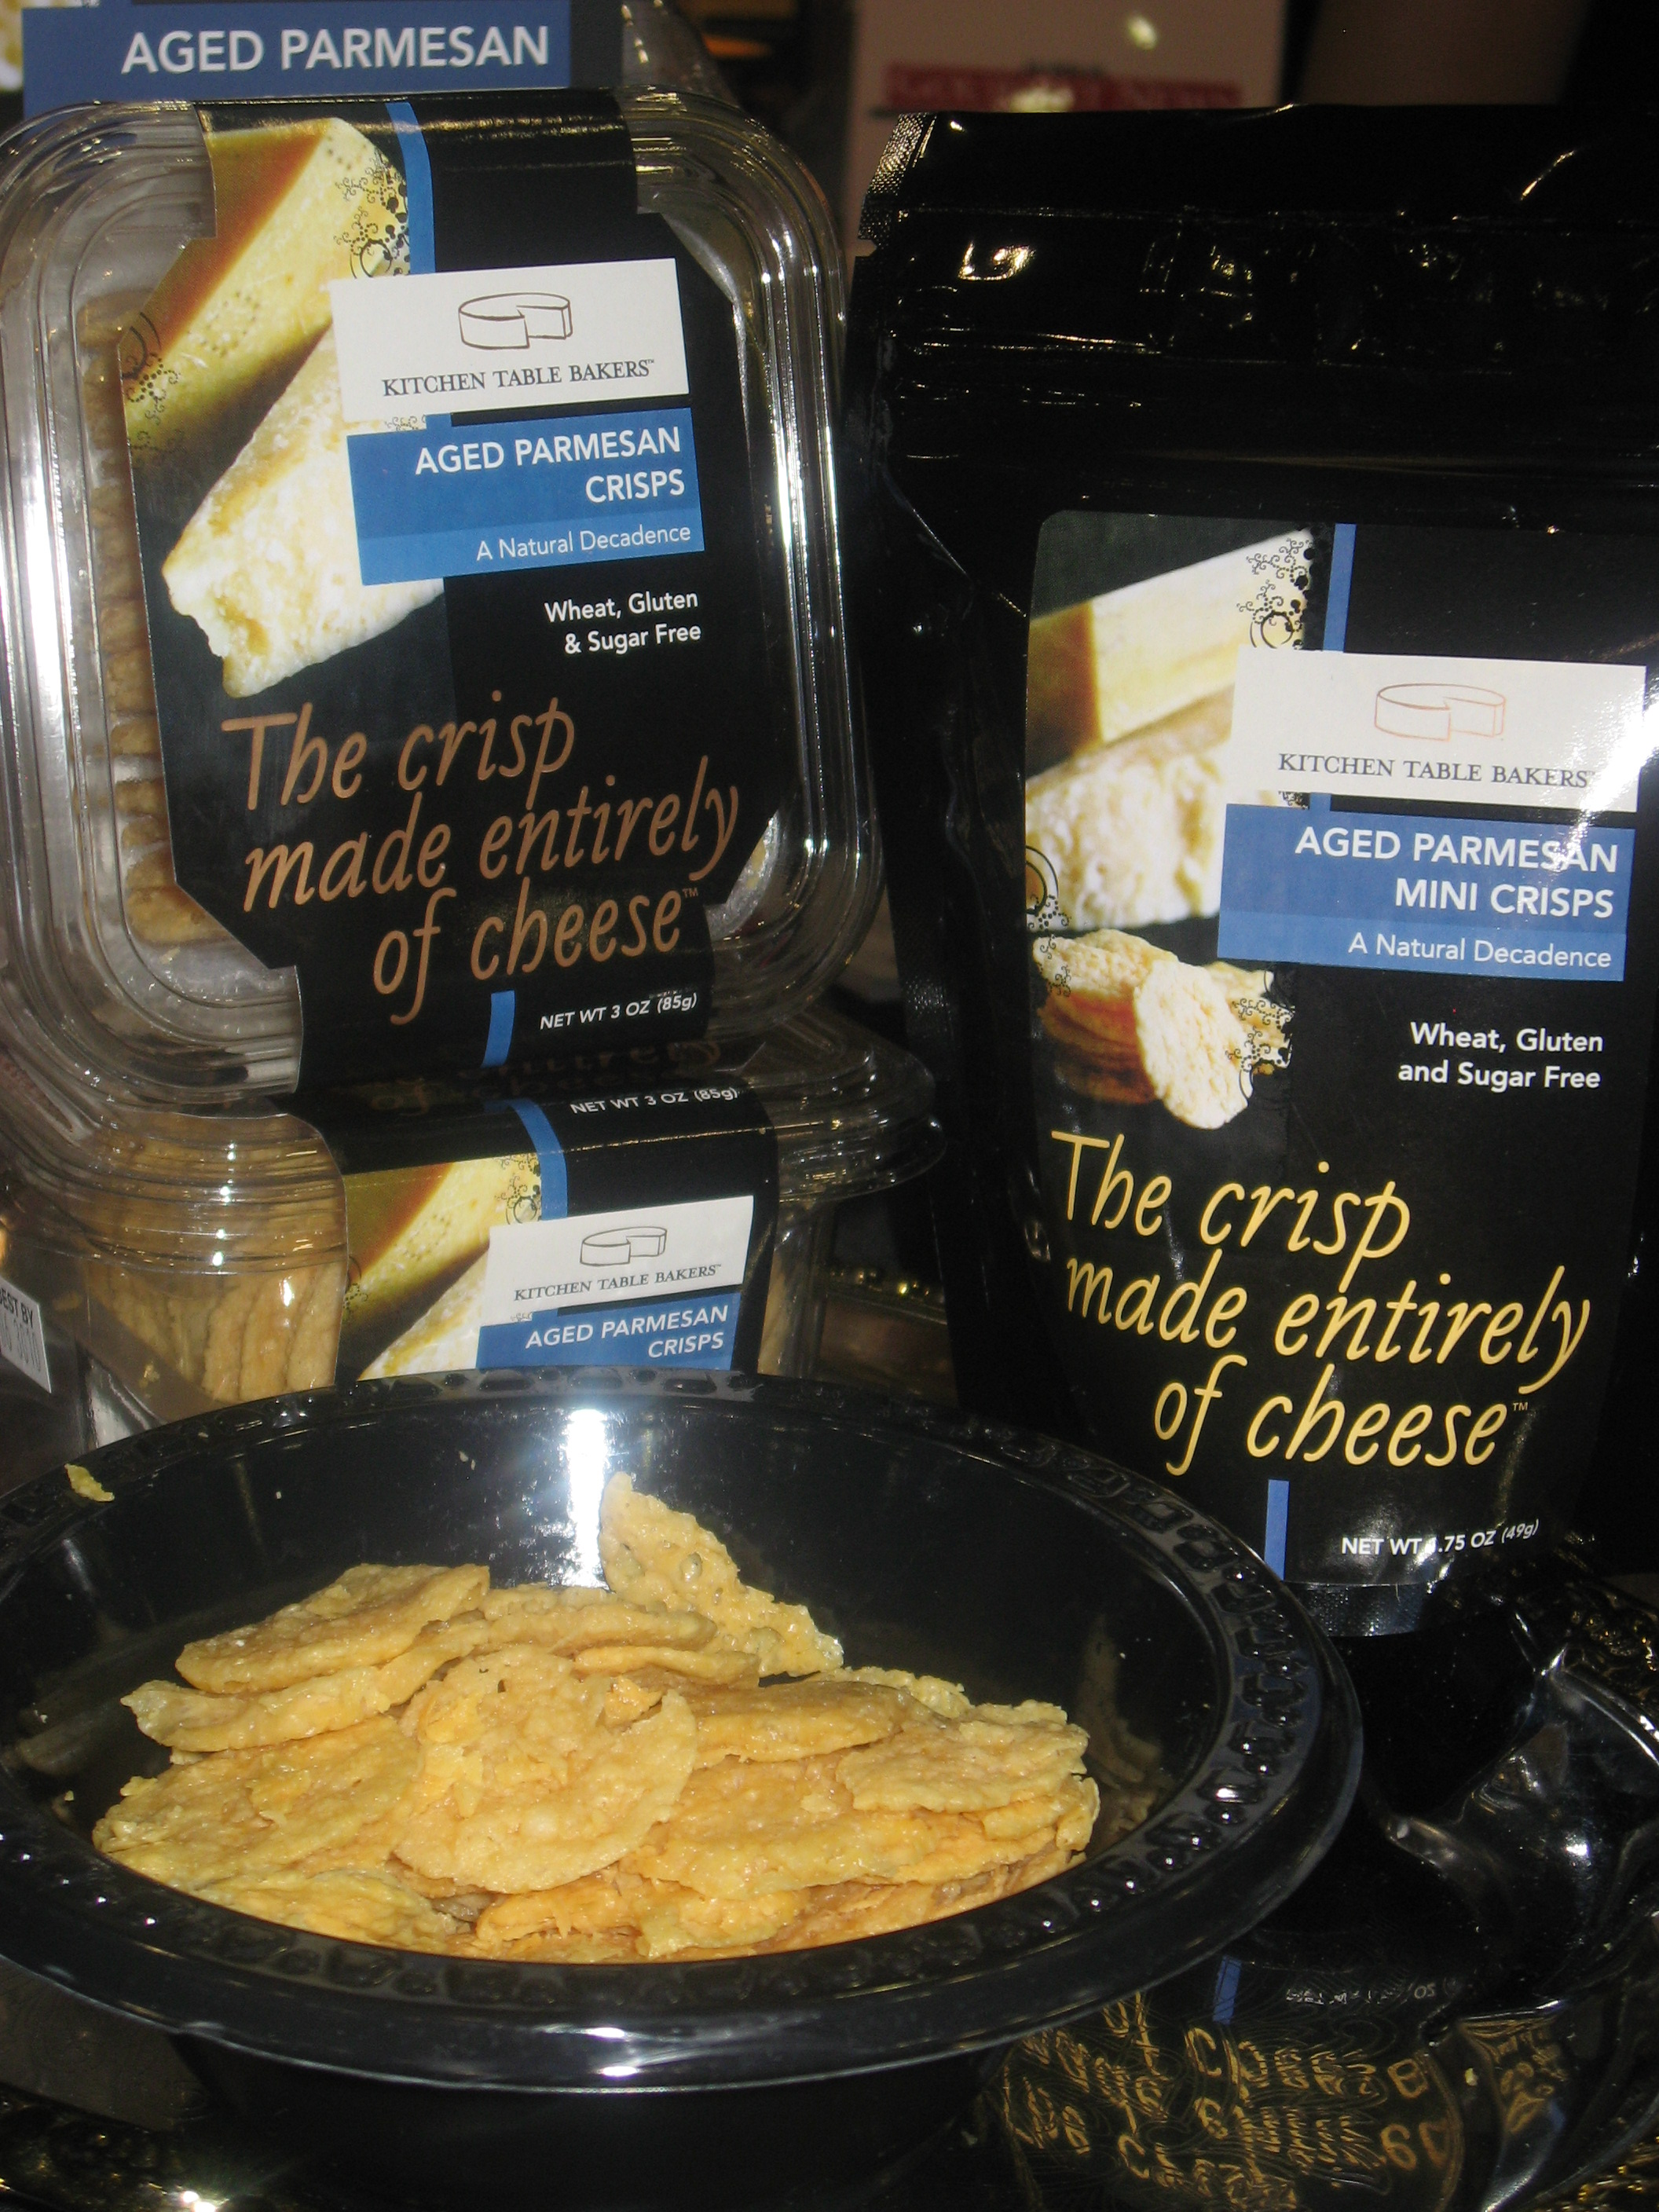 best of fancy food show kitchen table bakers Kitchen Table Bakers Cheese Crisps